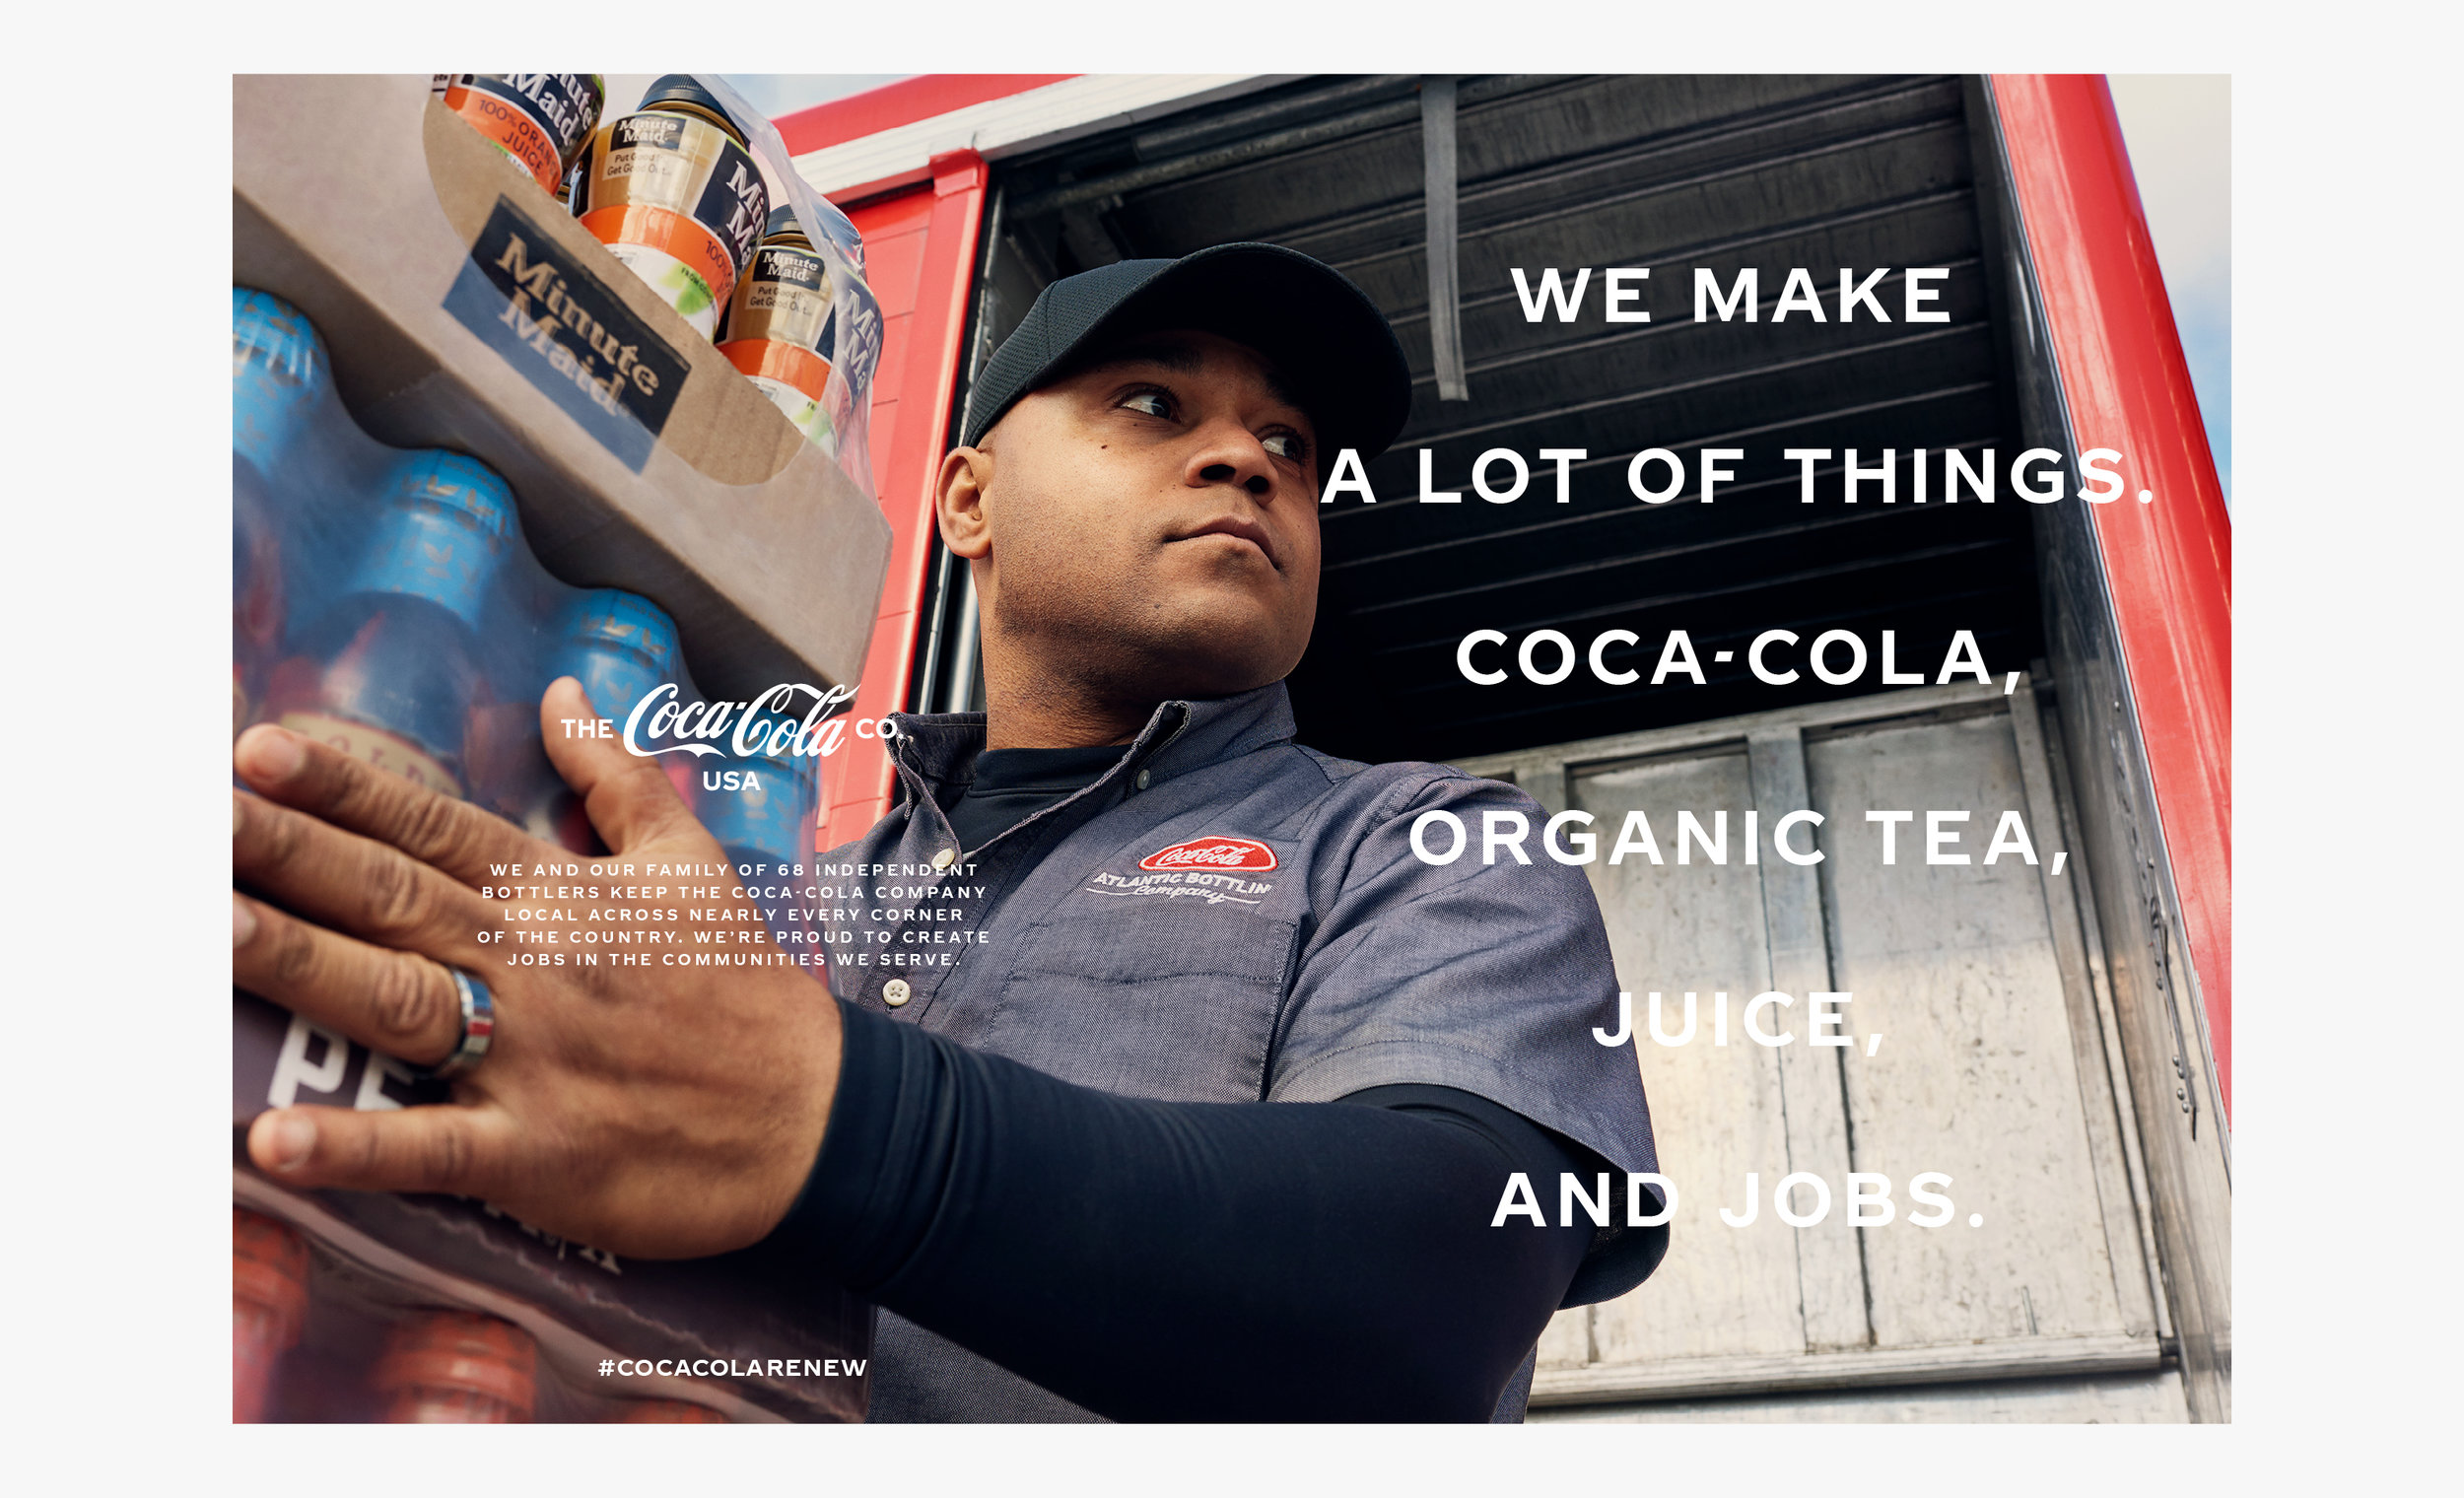 We created a national print and social campaign featuring over 75 Coca-Cola Company employees from 10 cities across the United States.